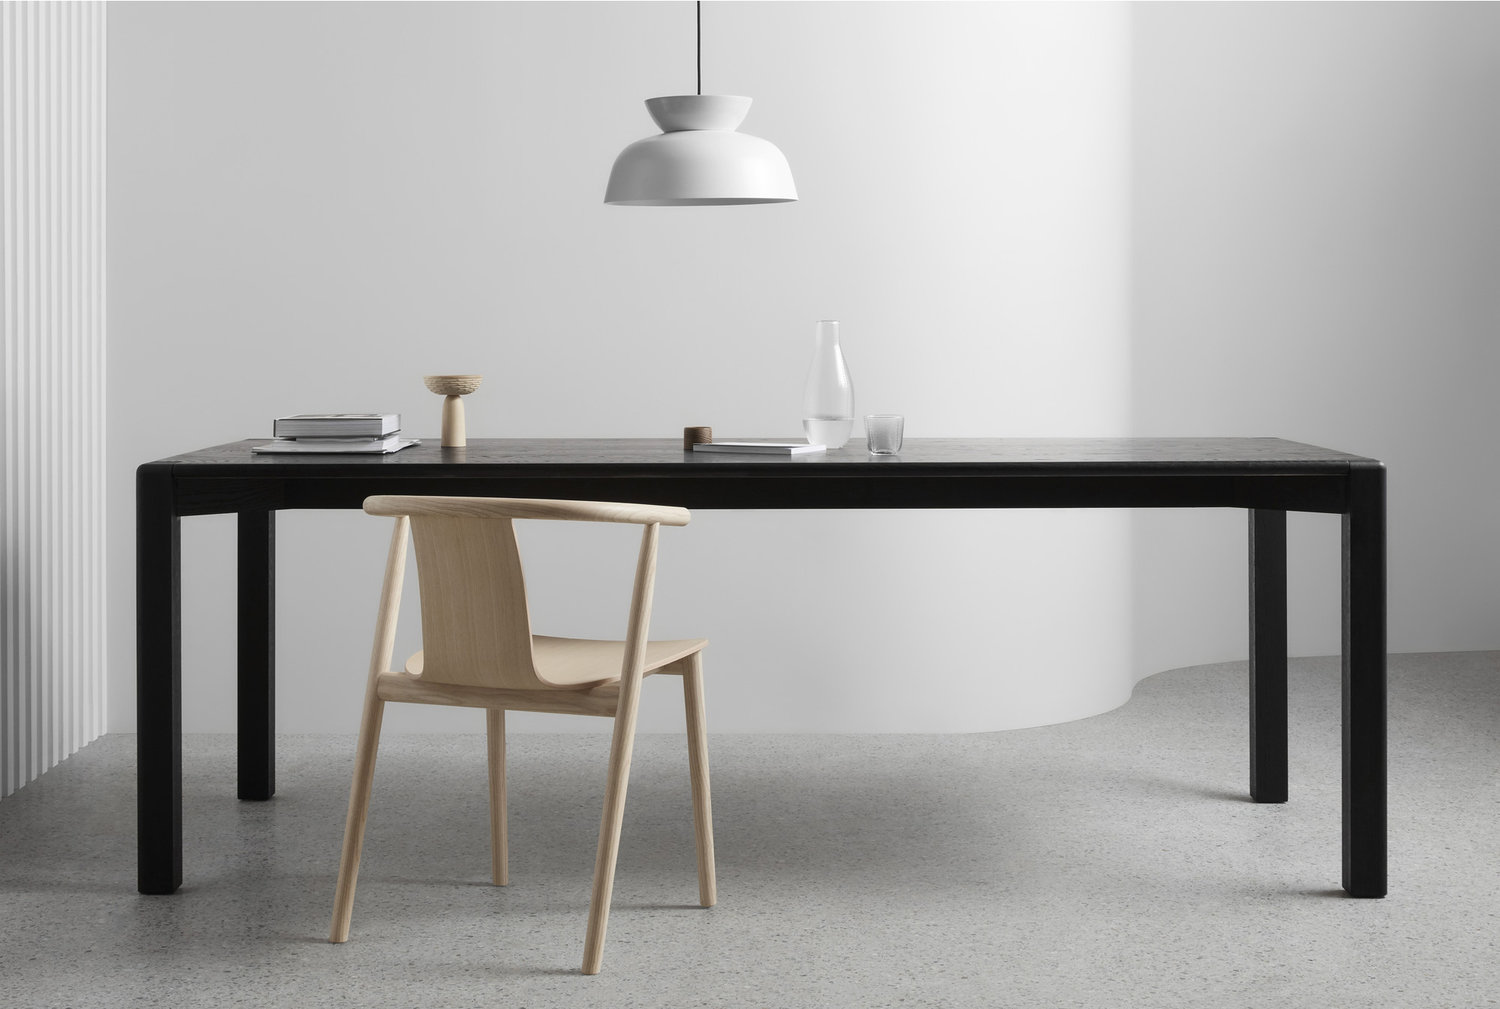 The AOD – T American Oak Timber Dining Table by Brunswick–based Victorian furniture designer Made by Morgen. The timber finish comes in natural or black.